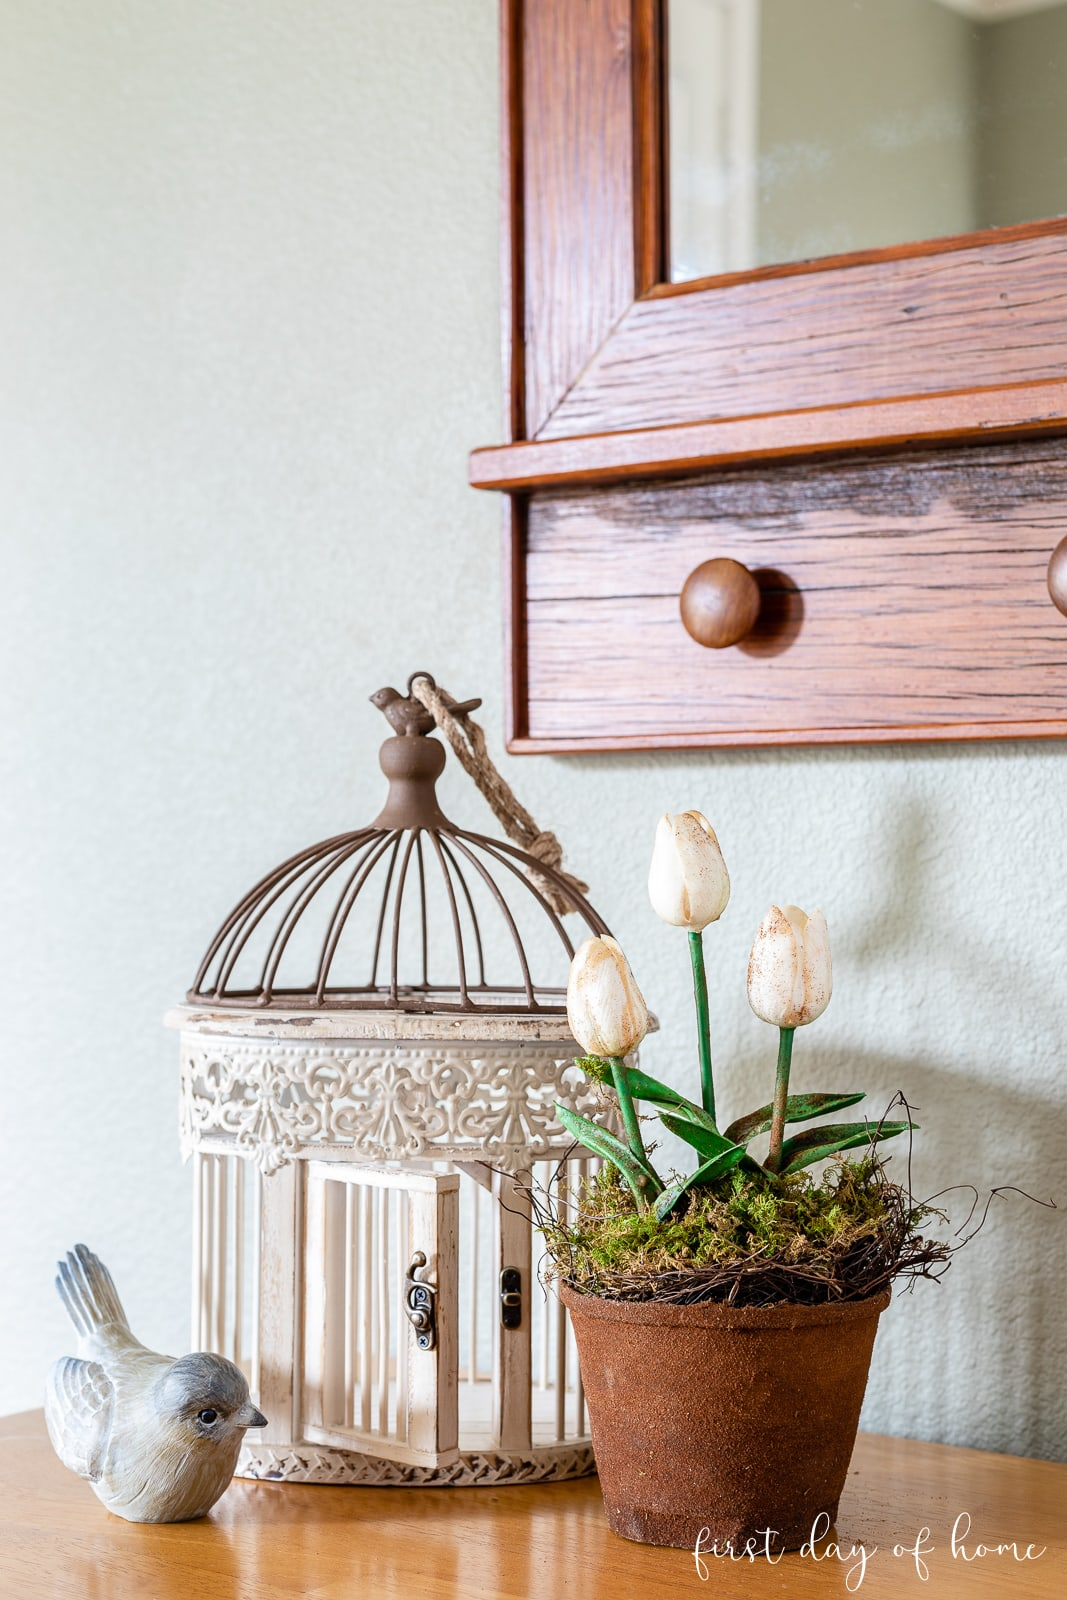 Spring decor with bird, cage and faux potted tulip